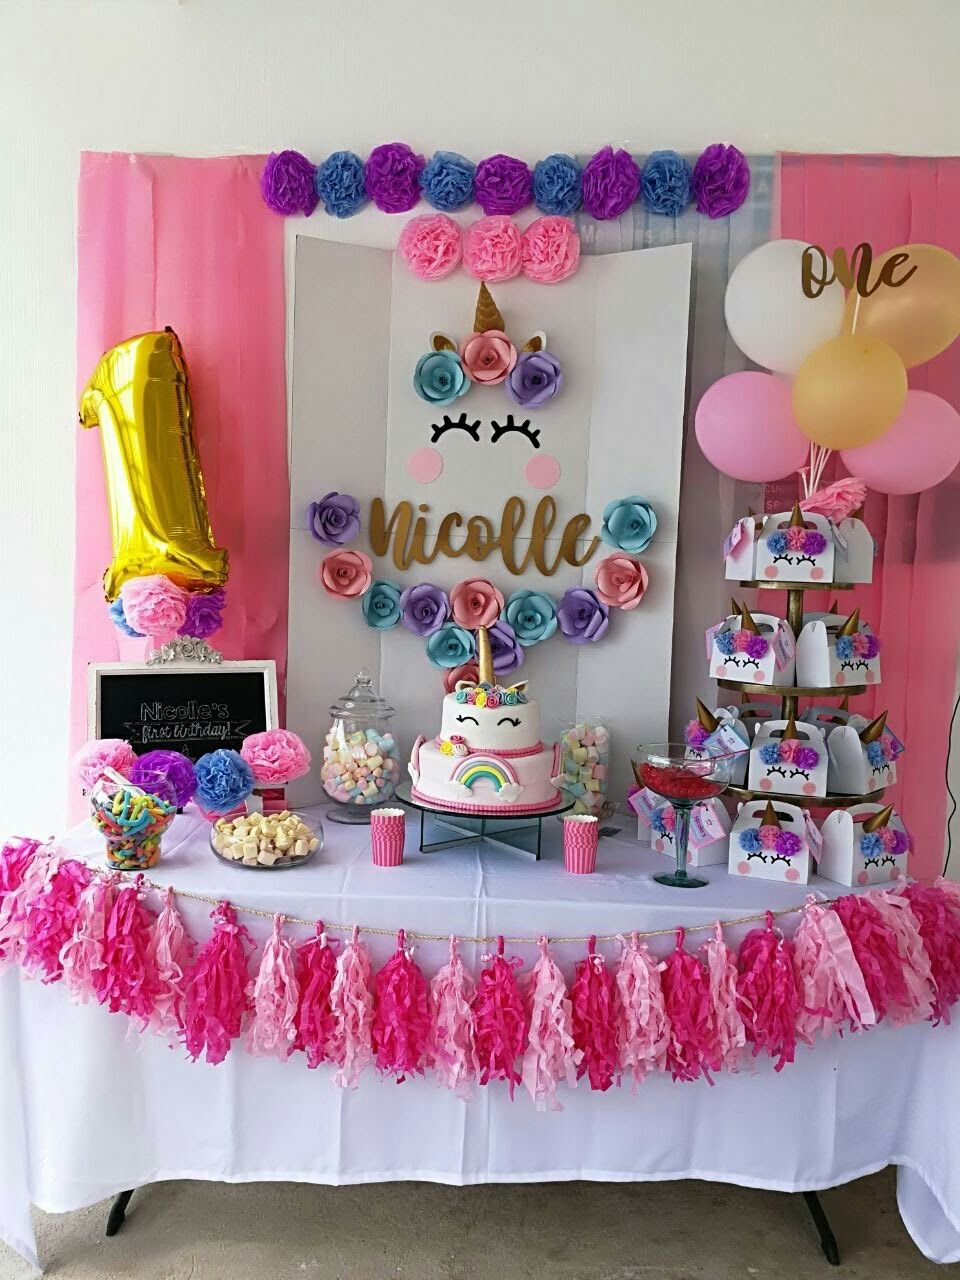 Decoracion unicornio 1 cumplebebenicolle cumple for Paginas de ideas de decoracion